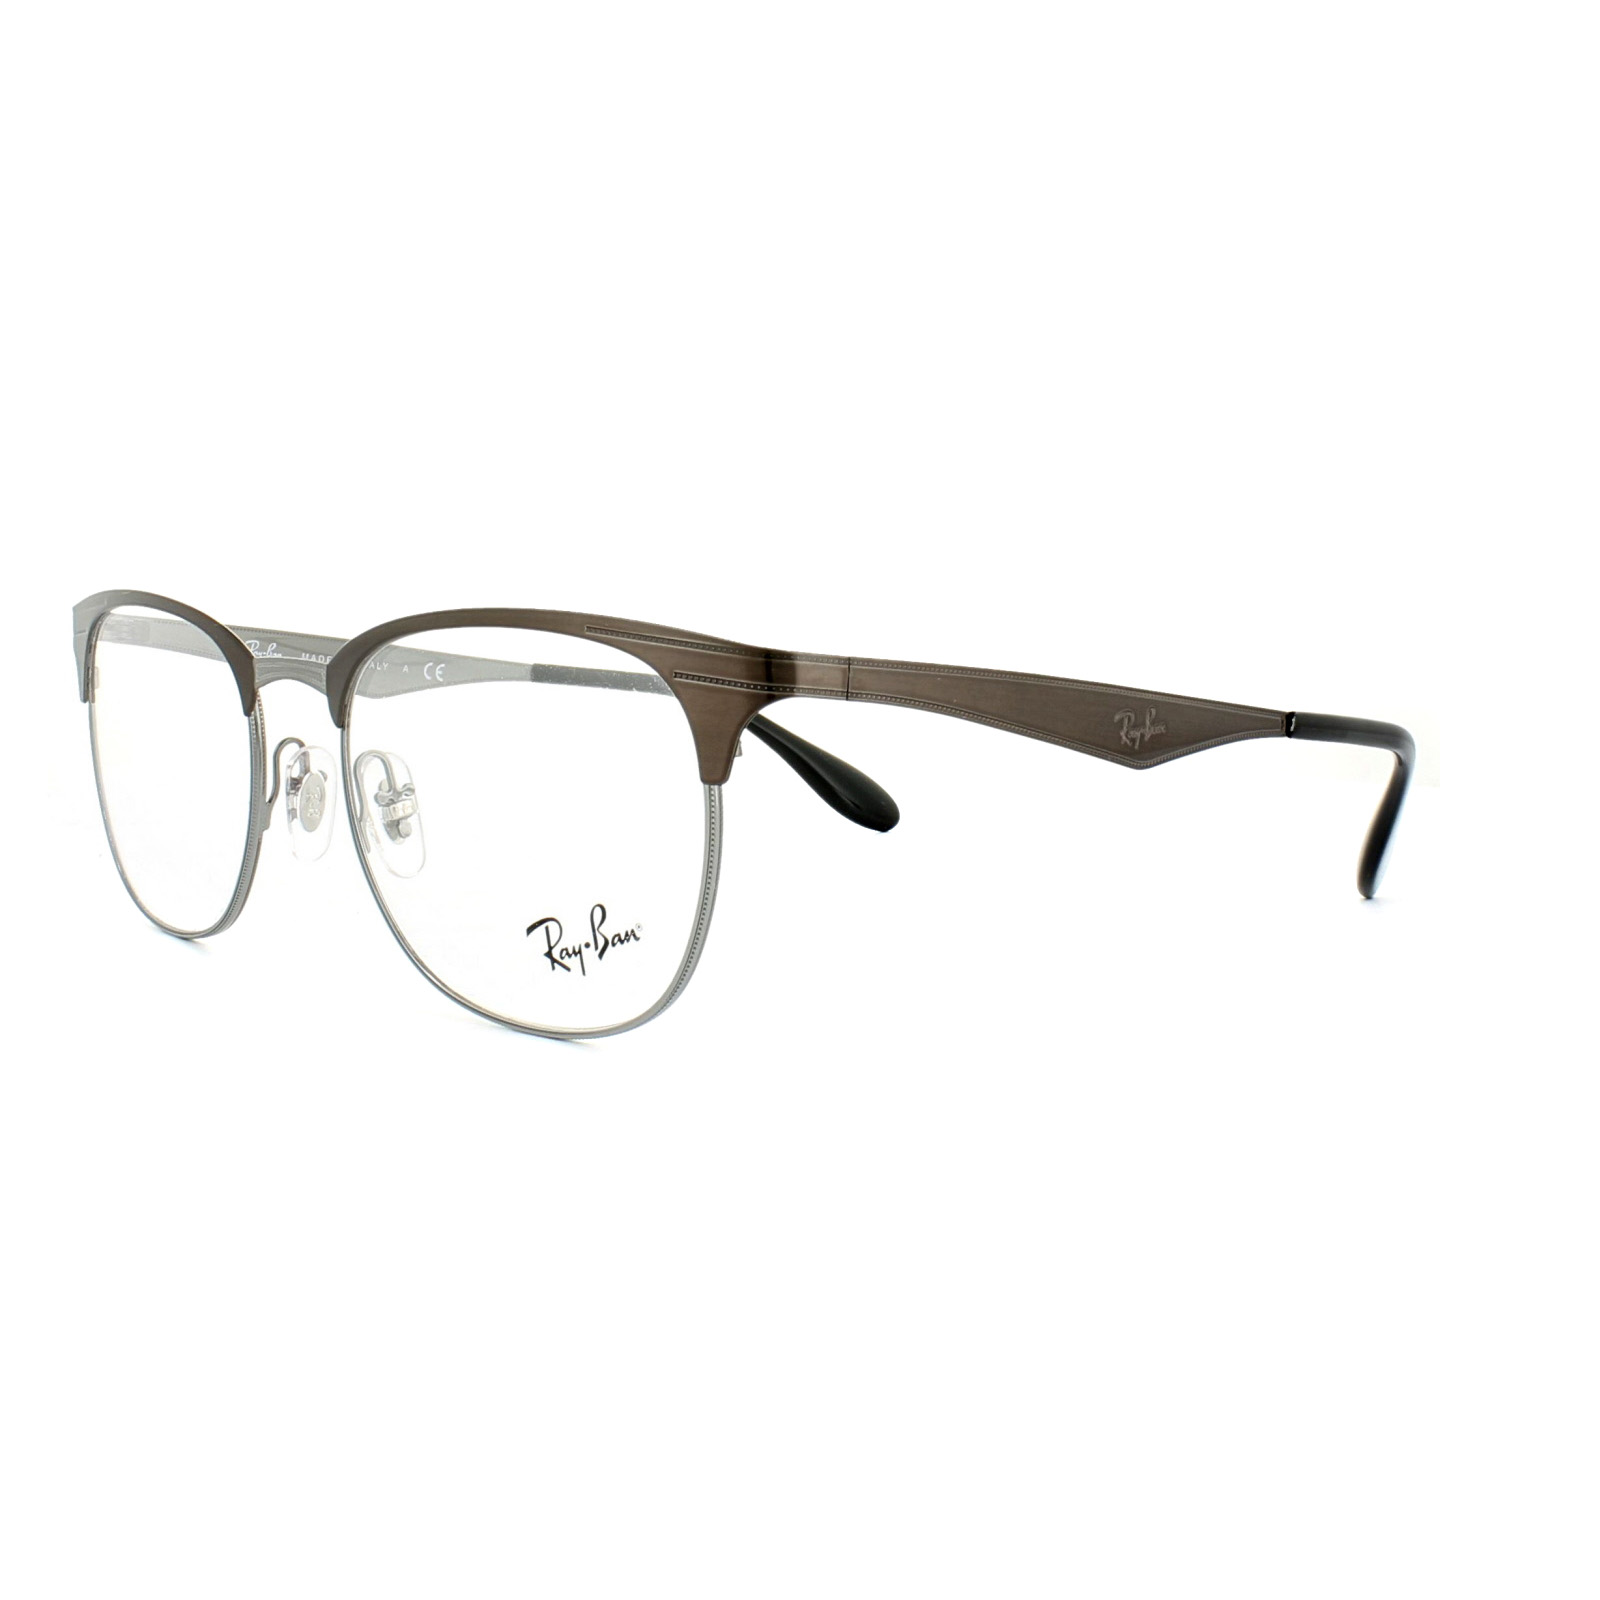 Ray-Ban Glasses Frames RX 6346 2862 Top Brushed Dark Brown On ...